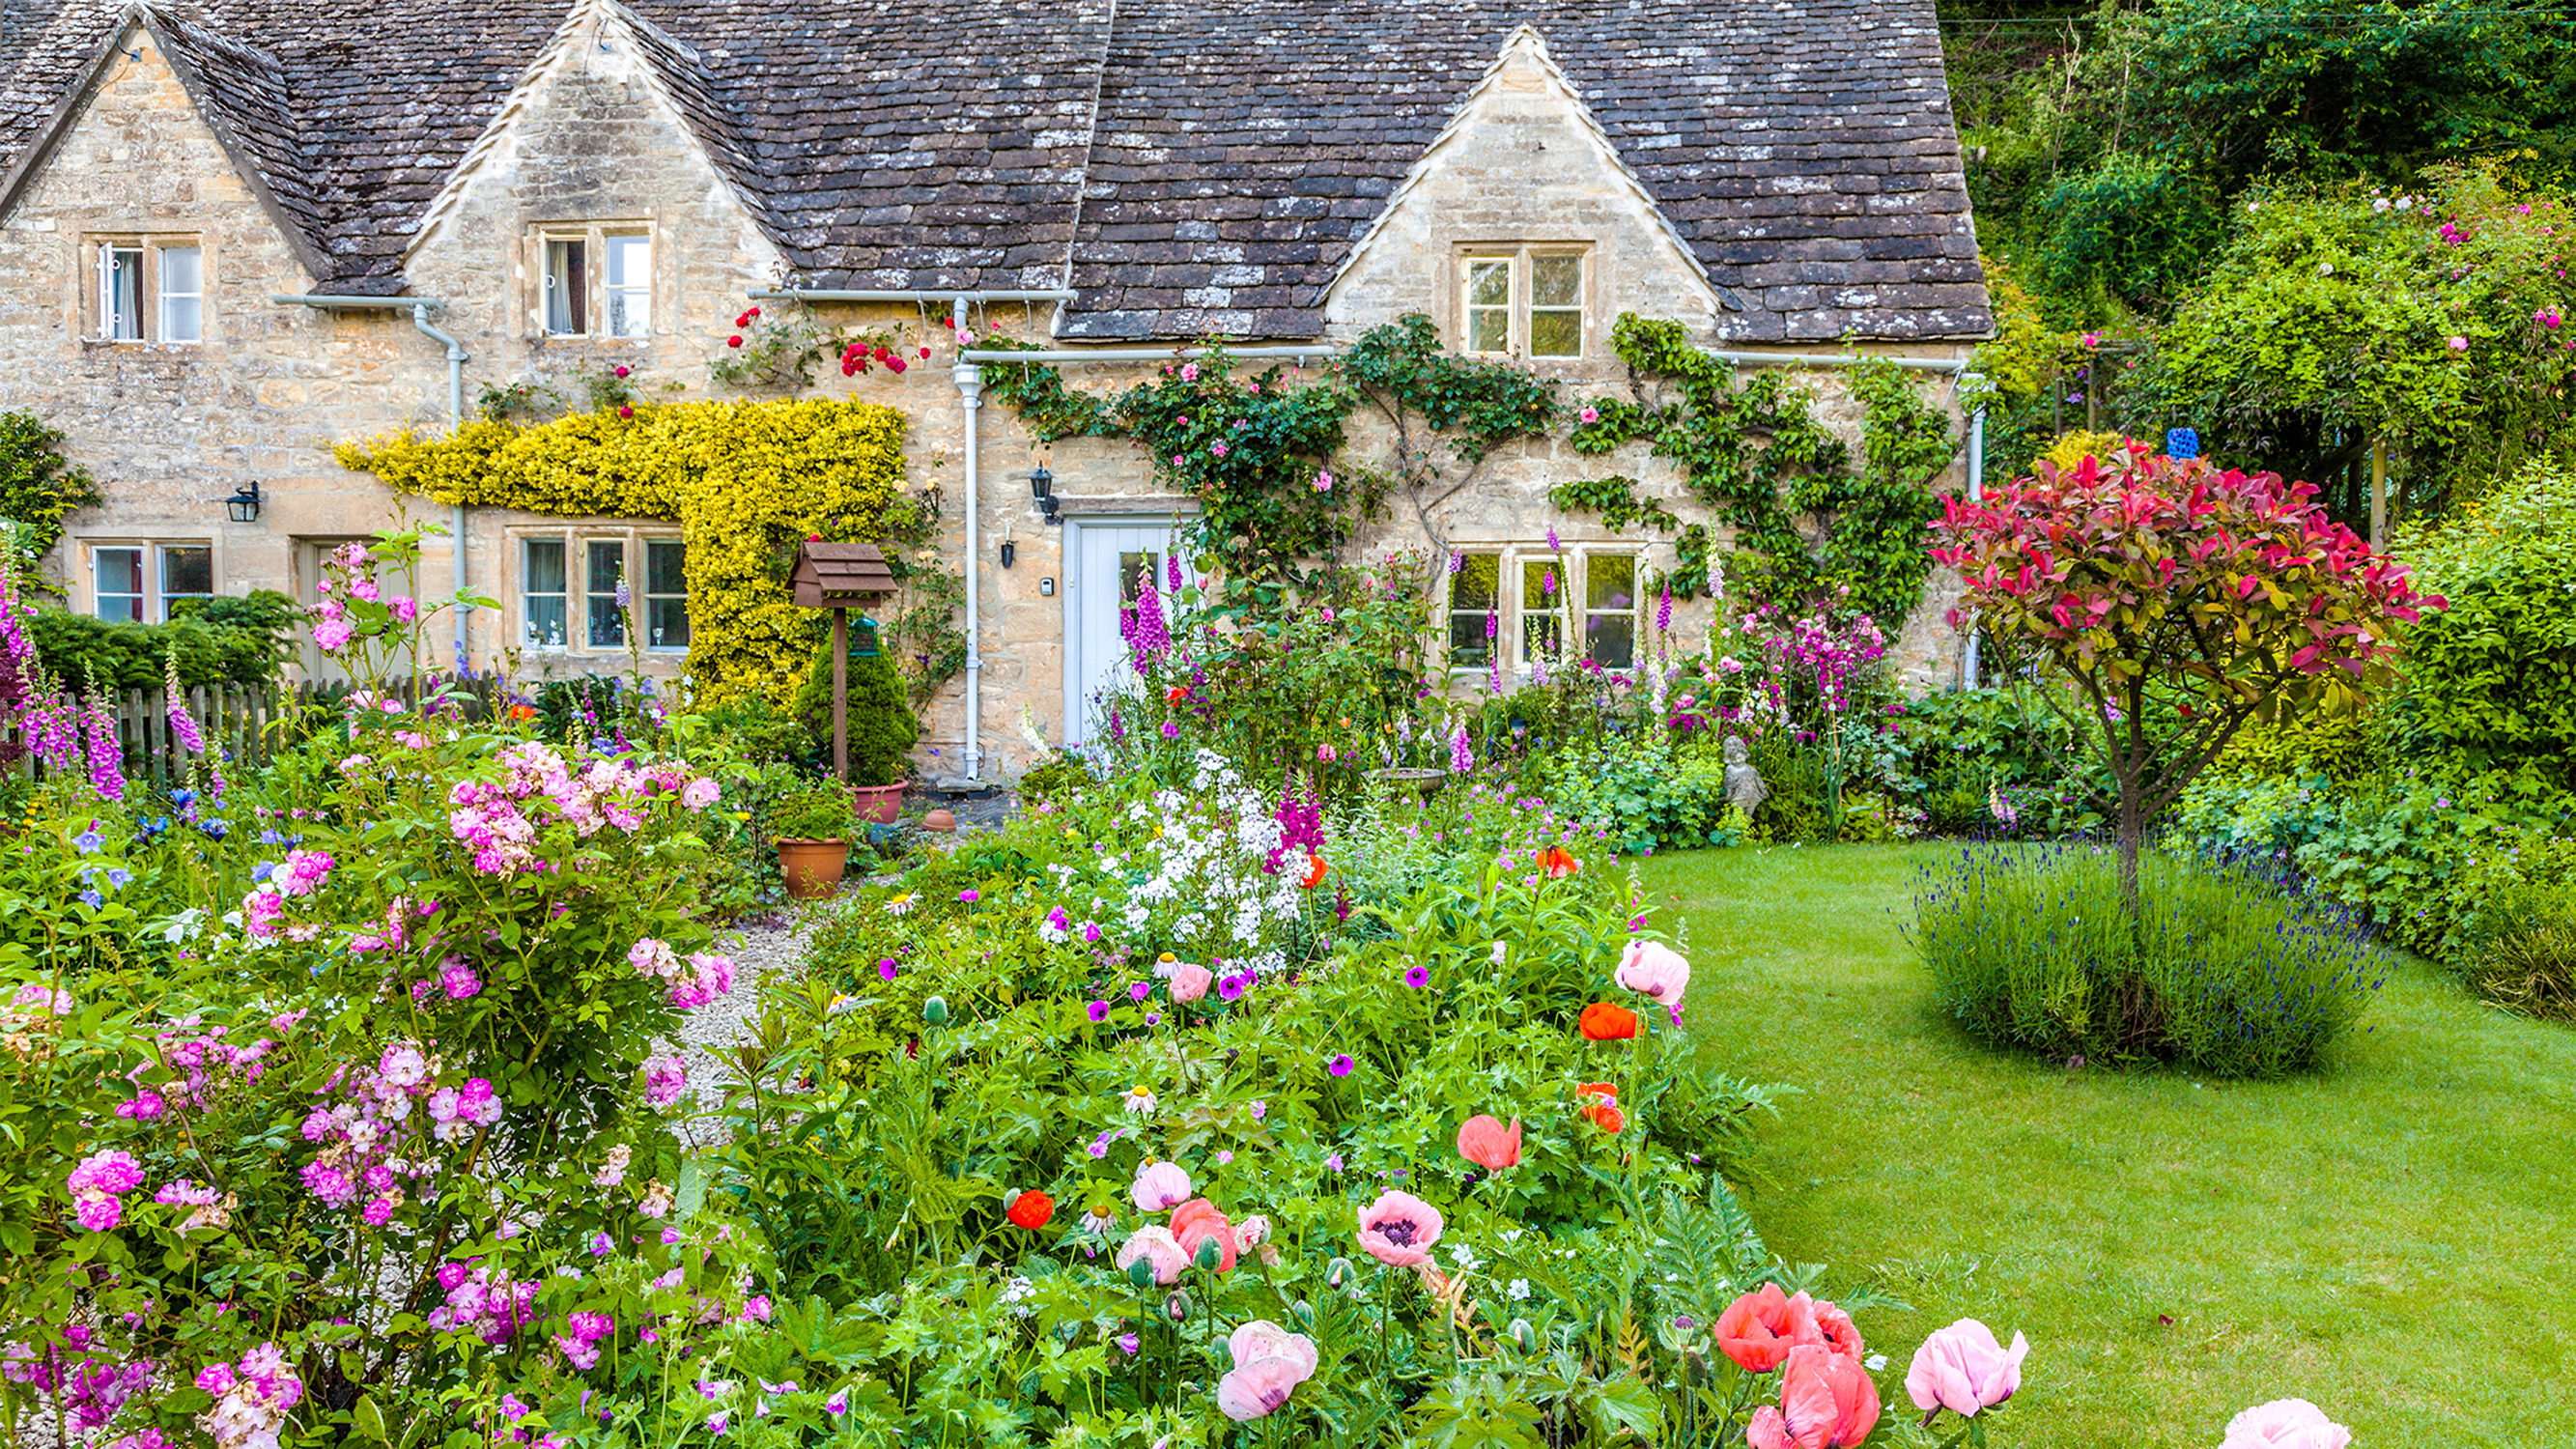 cottage garden the classic cottage country garden is largely a modern creation, with an IHJTTON